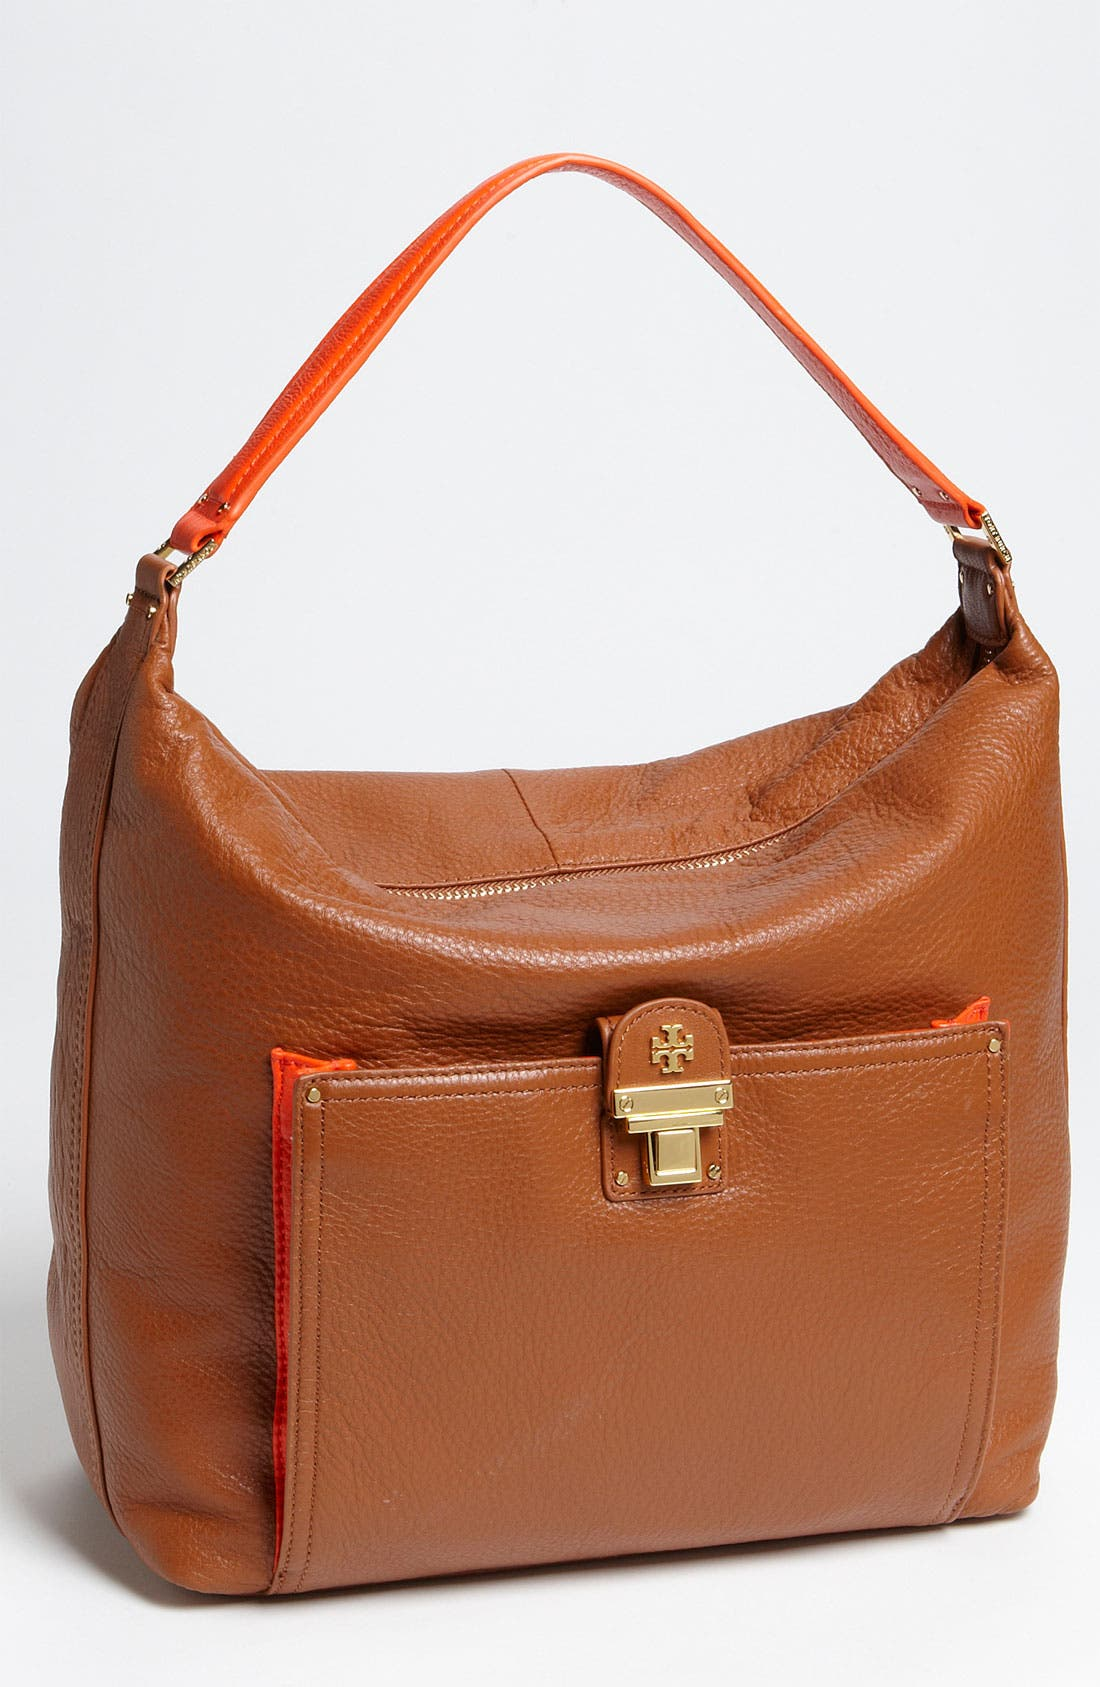 Alternate Image 1 Selected - Tory Burch 'Rachael' Bucket Hobo